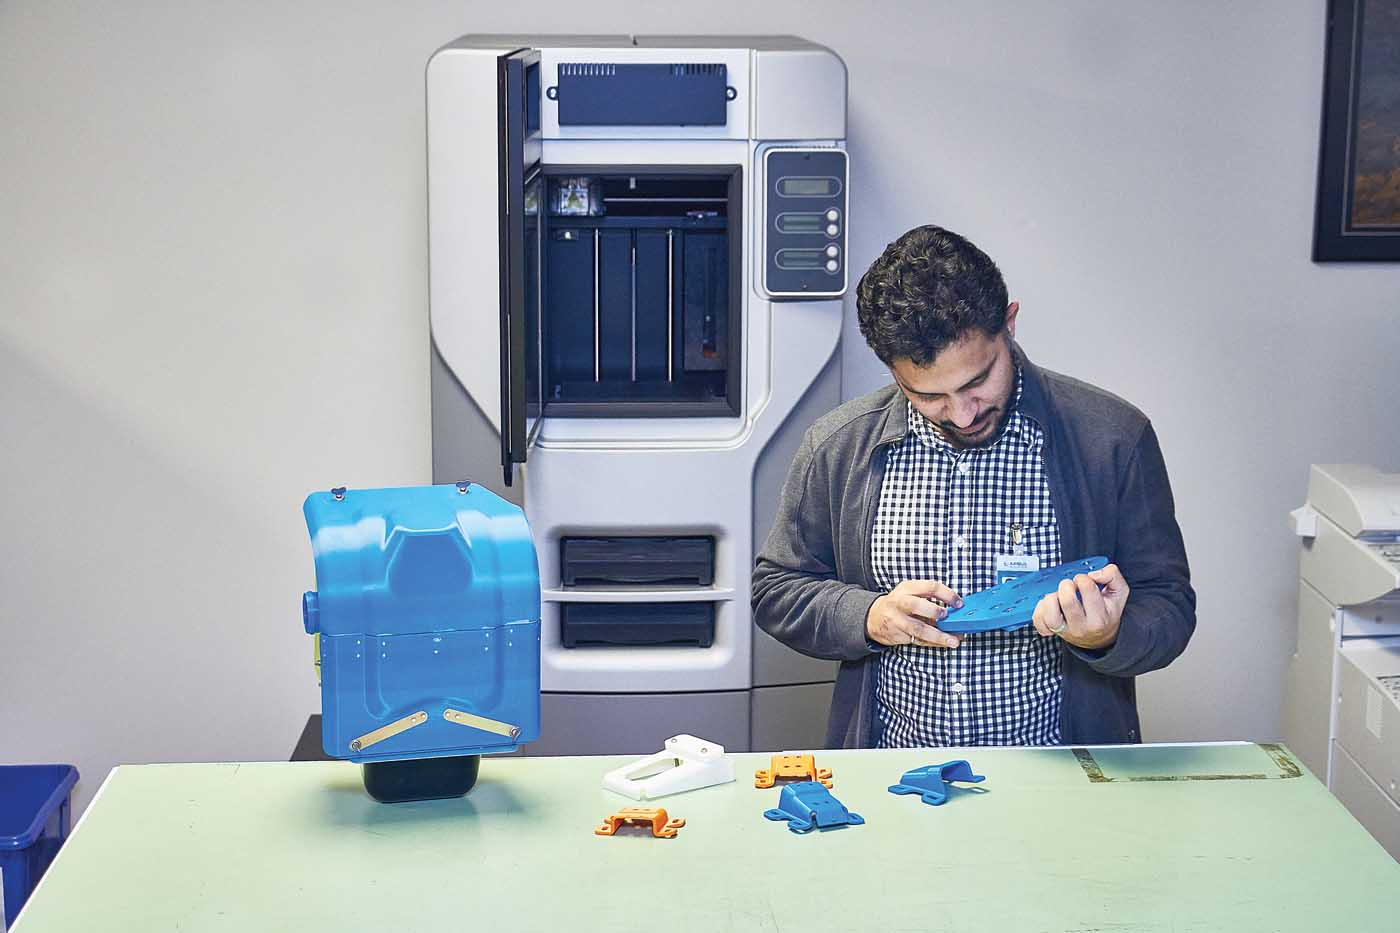 Airbus Helicopters Canada purchased an additive manufacturing machine two years ago, and uses it to make ABS plastic parts — primarily for creating prototypes, but also for manufacturing jigs and basic checking tools. Vitek Zawada Photo